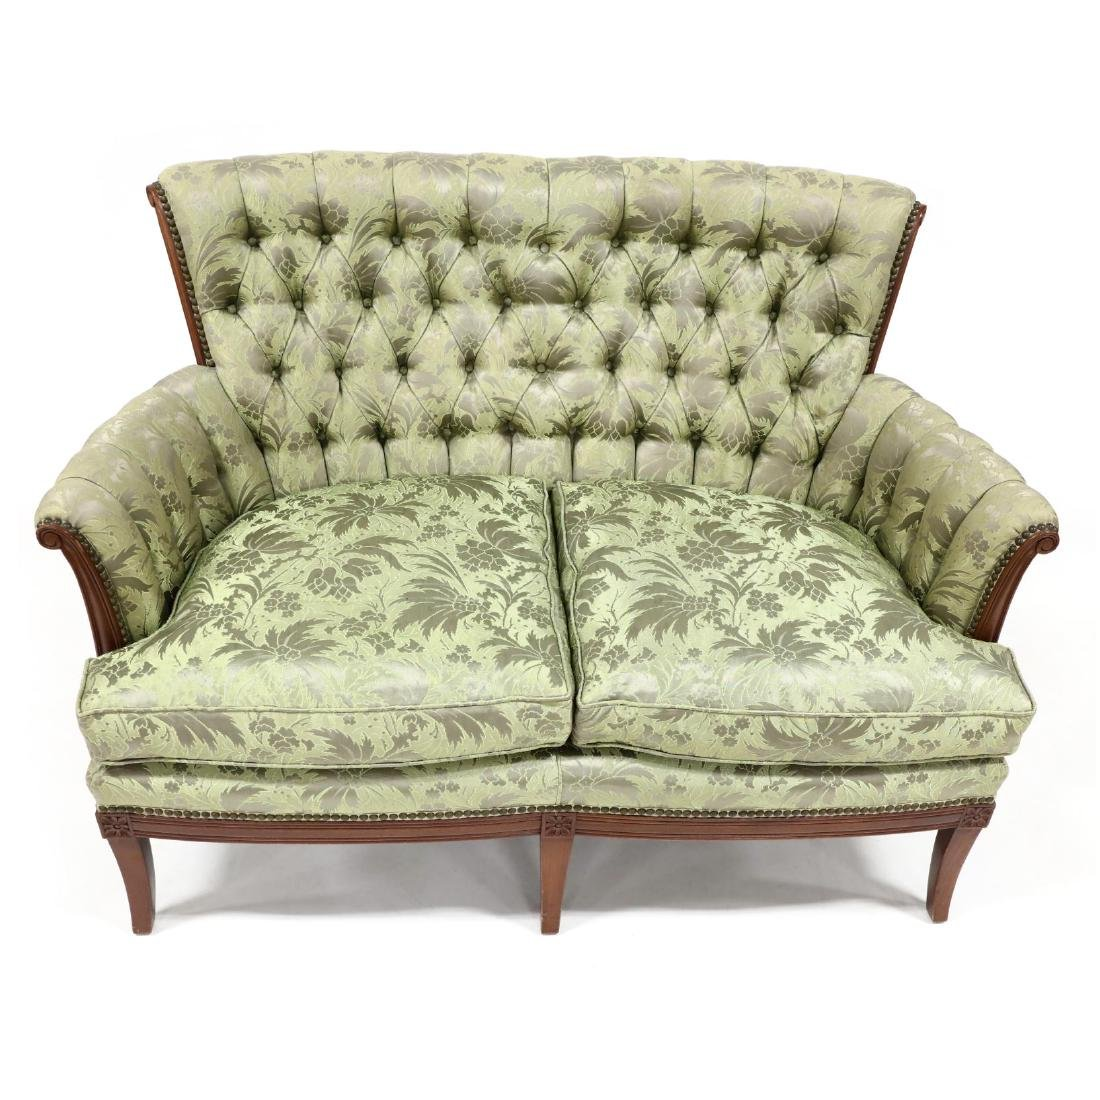 Brandt, French Provincial Style Settee - 2